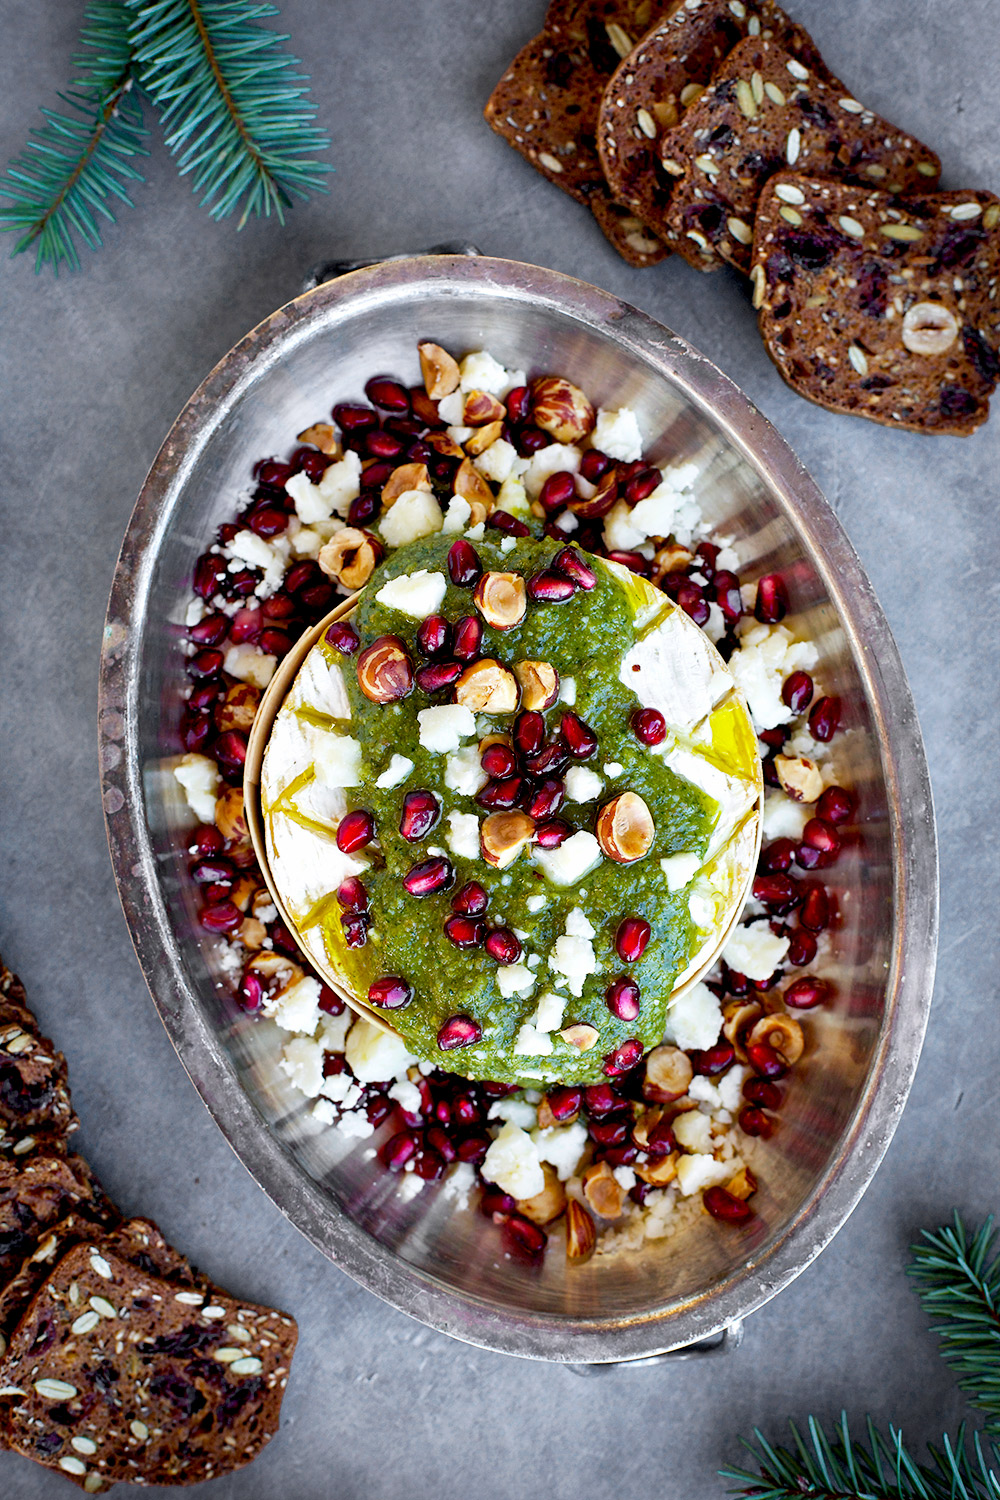 Baked Camembert with Gorgonzola Hazelnut Pesto